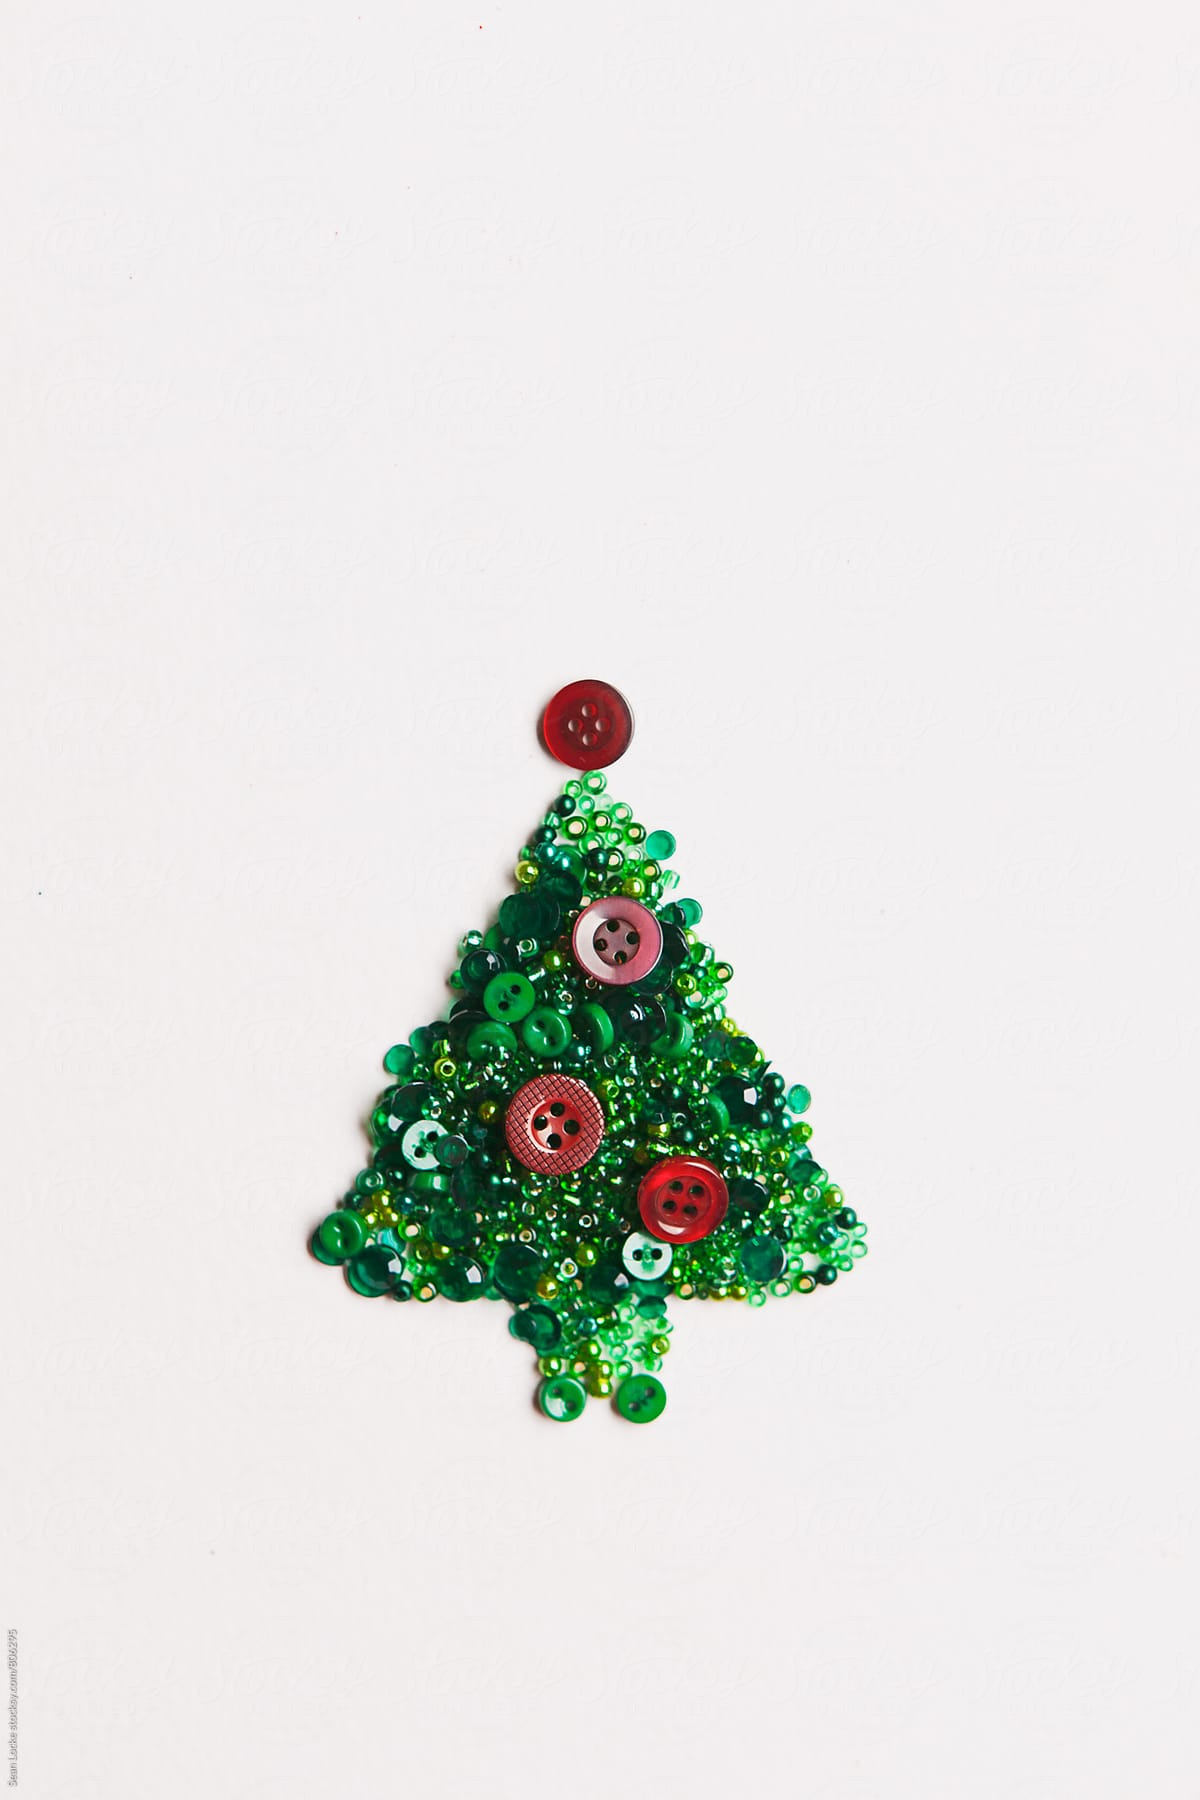 Holiday: Christmas Tree Made From Beads And Buttons